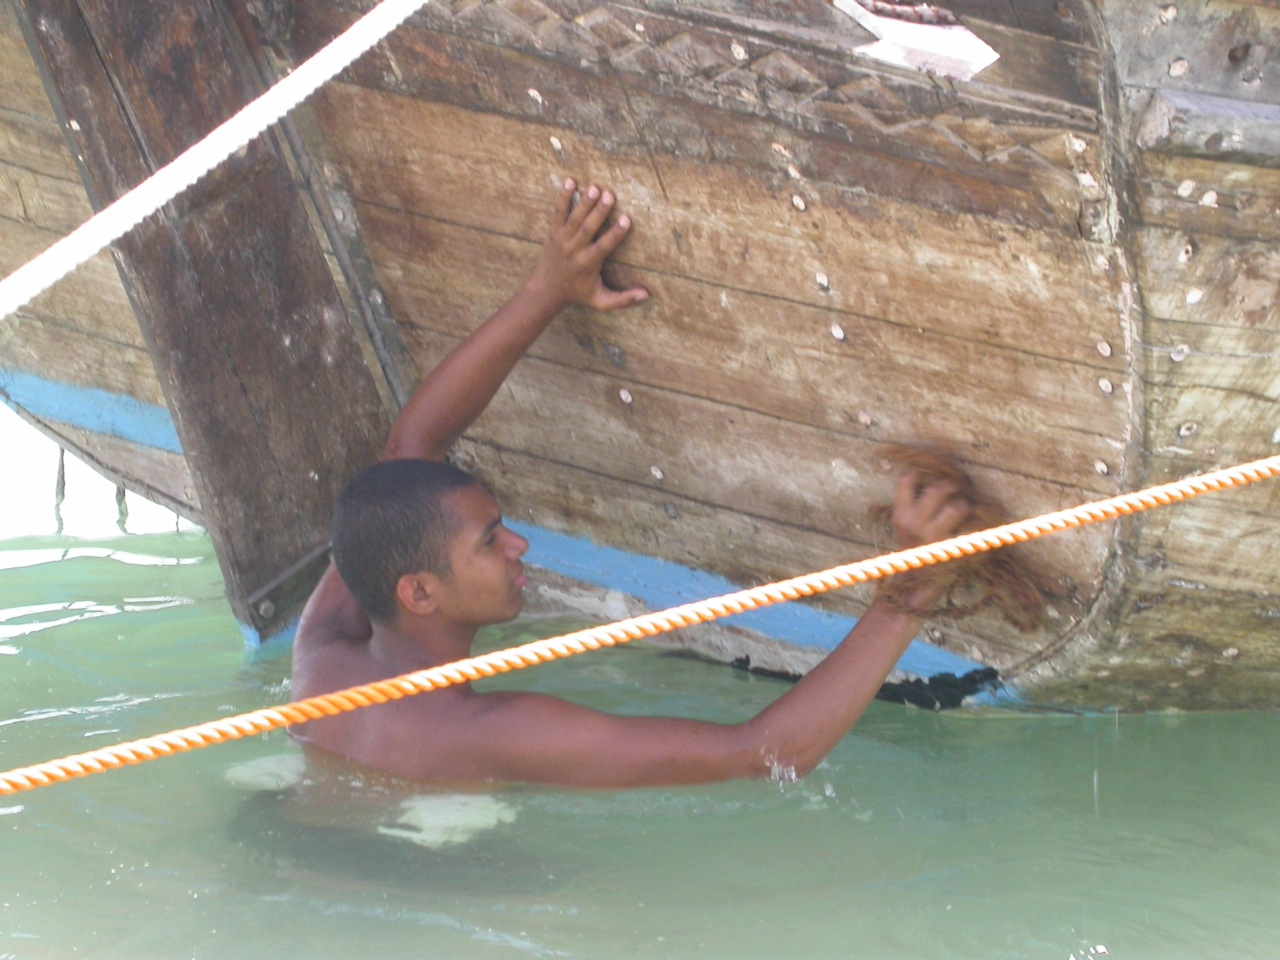 Visiting modern-day pearl divers